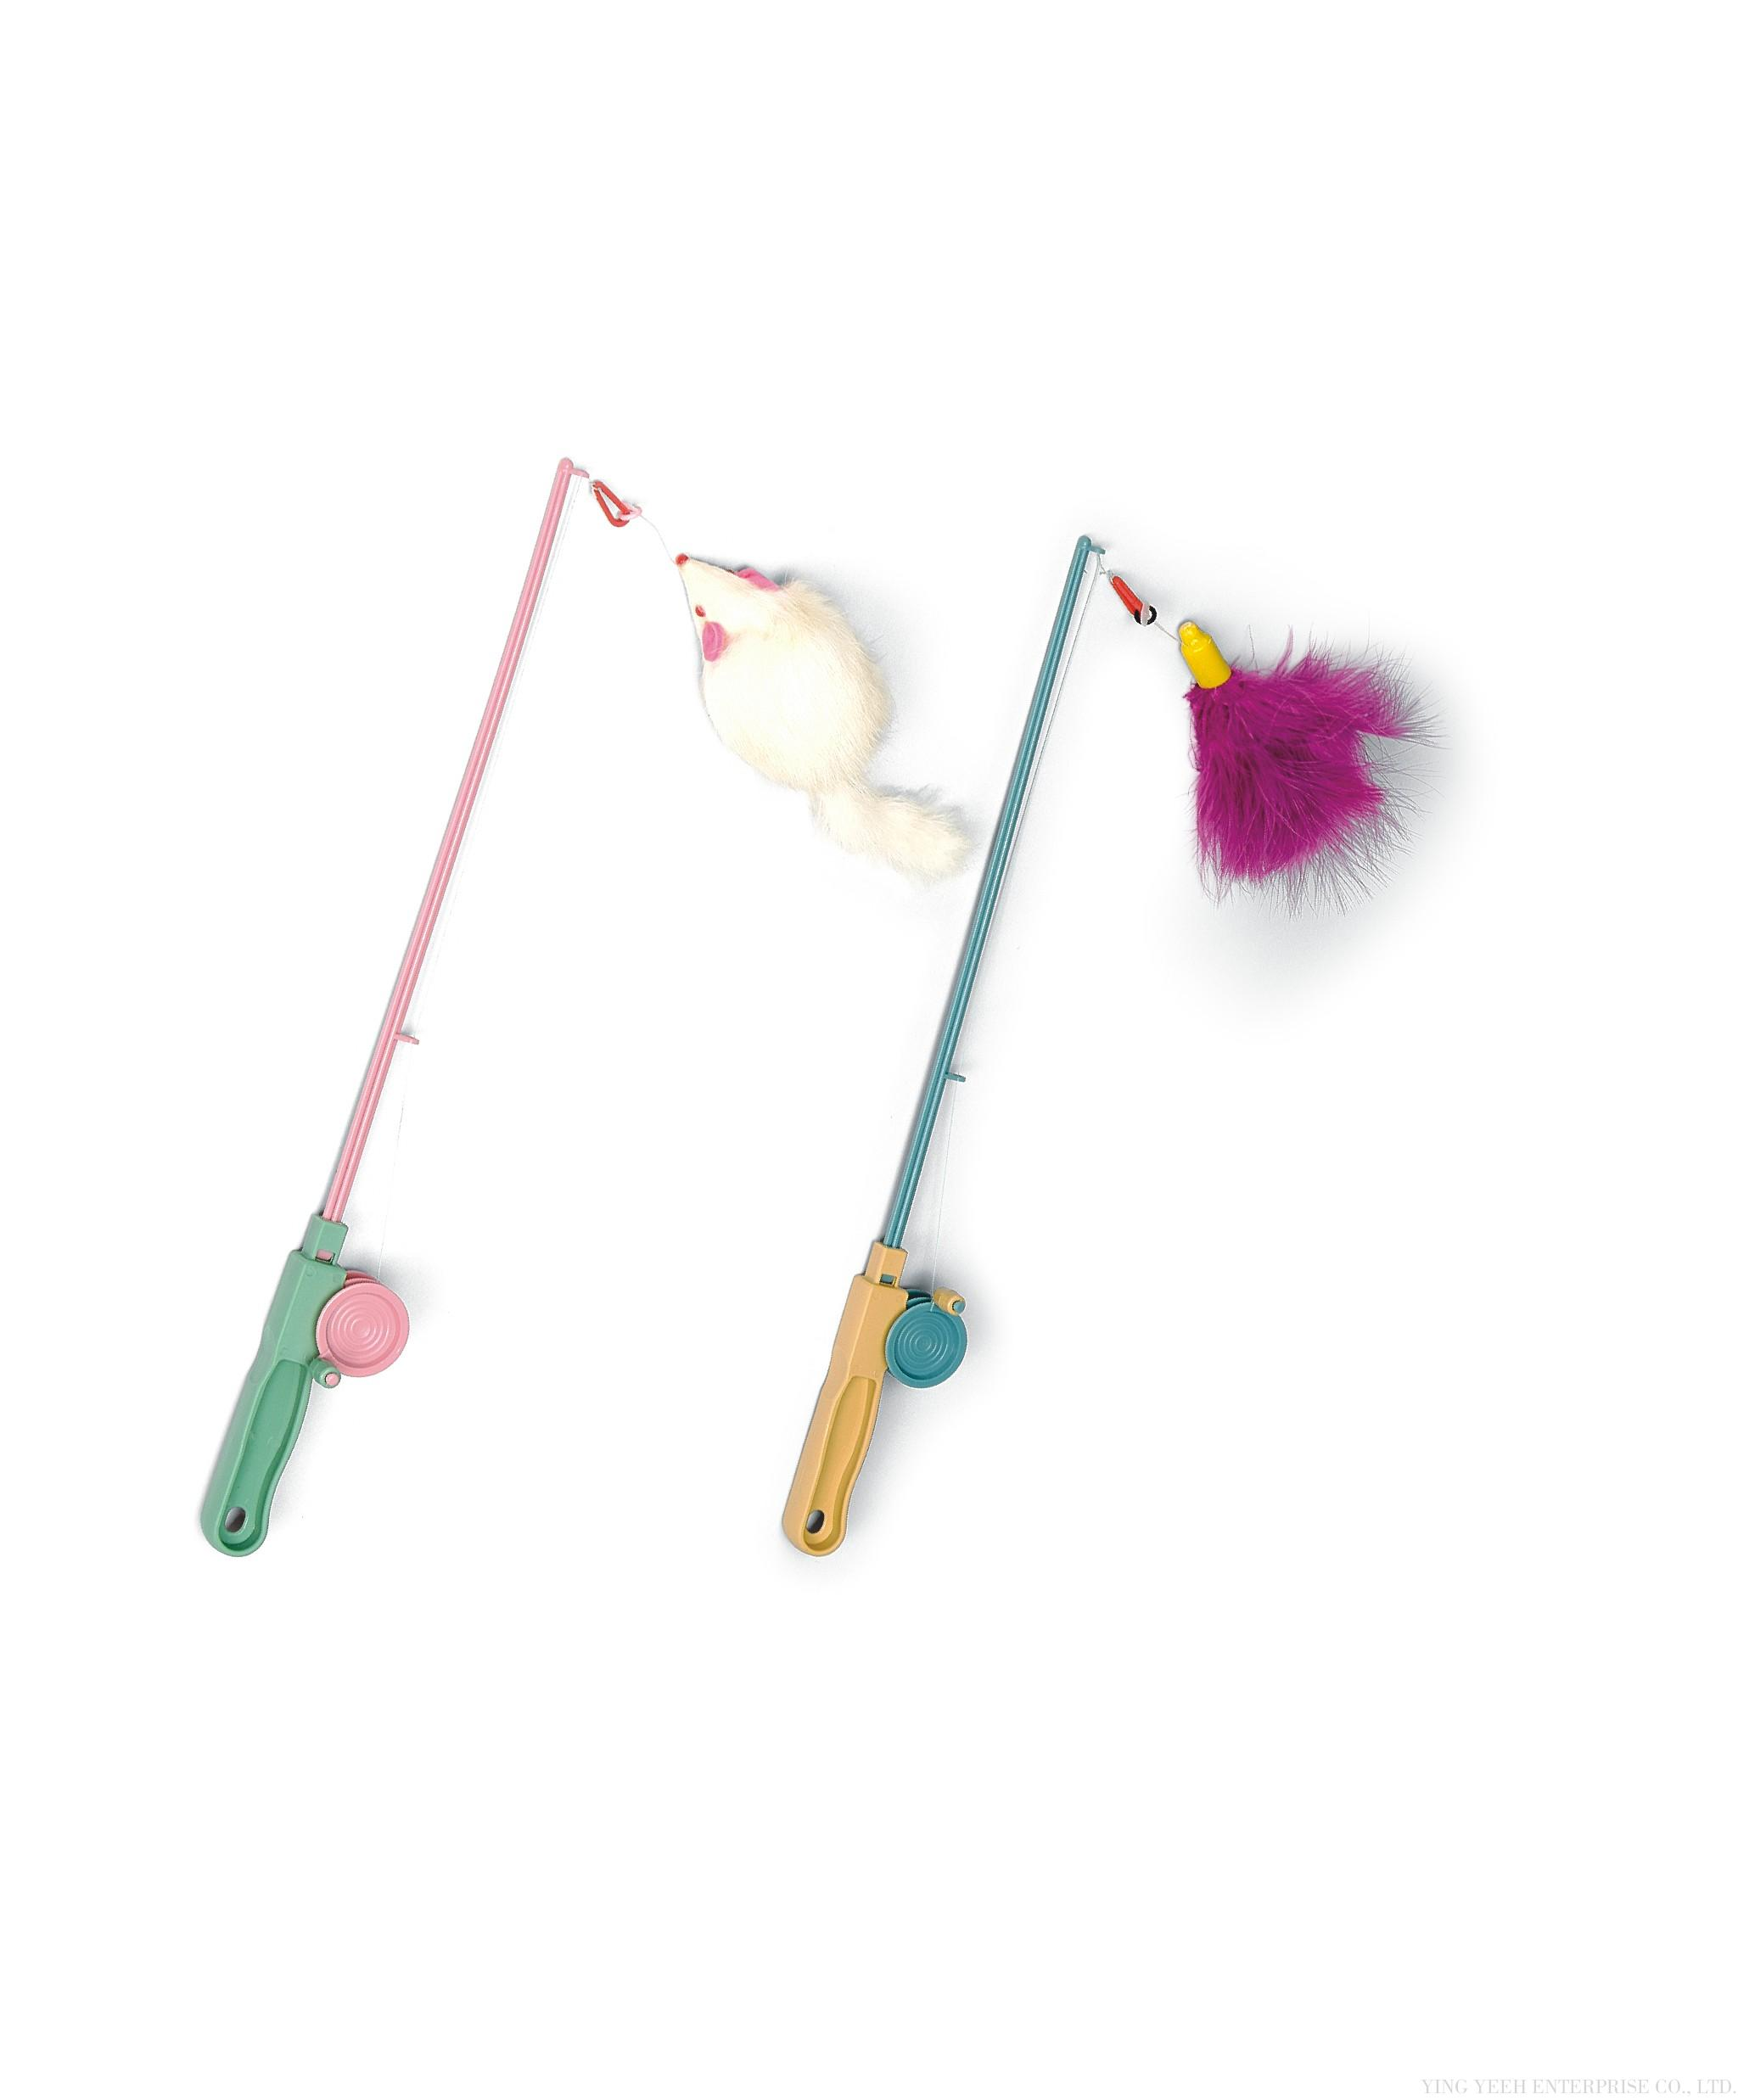 Acepet kitty fishing rod teaser with mouse or for Cat toy fishing pole